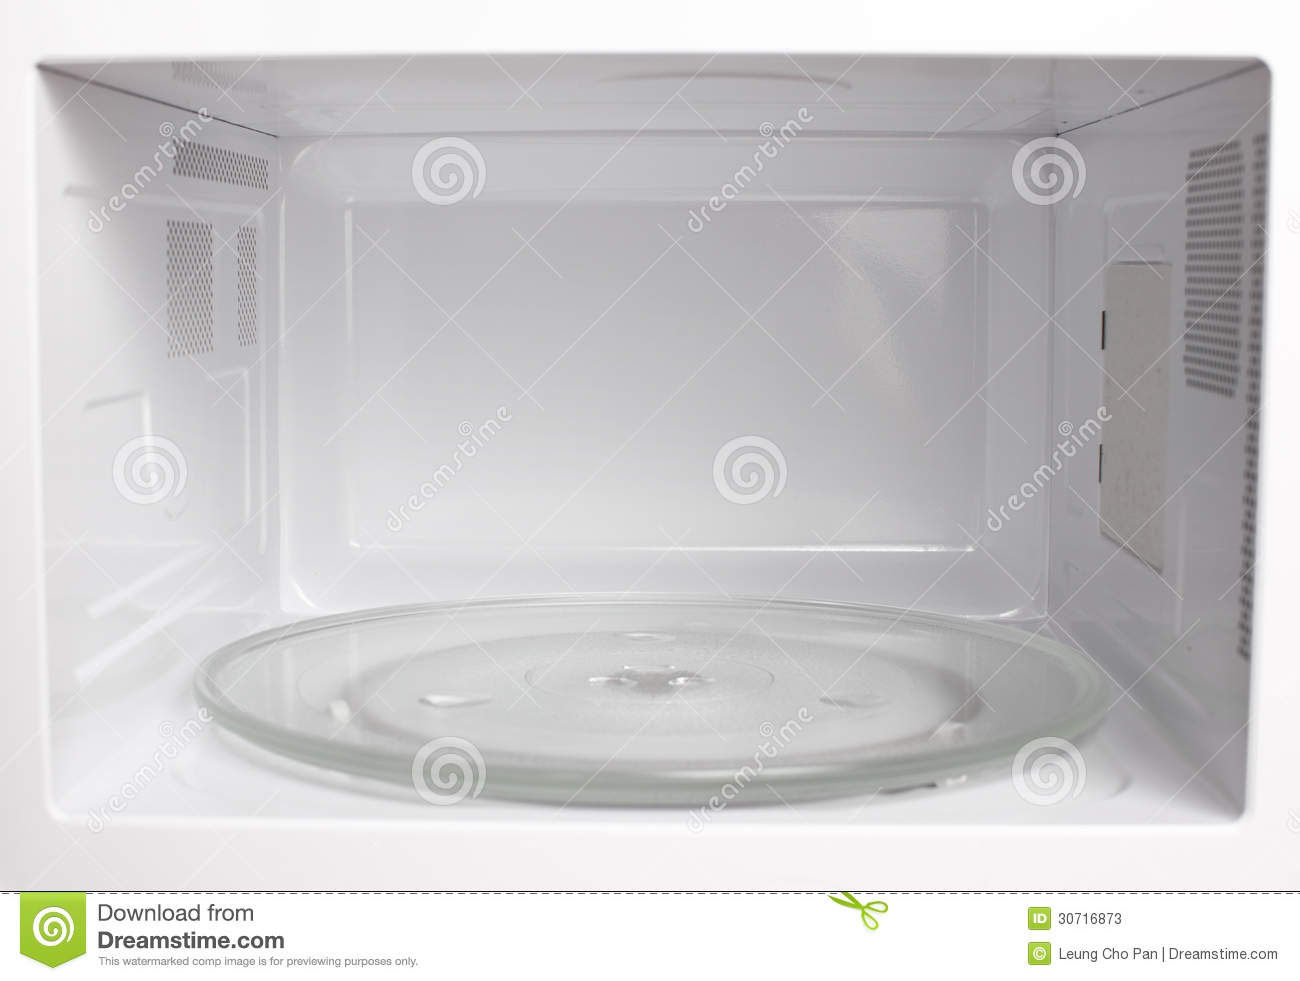 Microwave oven inside view stock photos image 30716873 - How to vent a microwave on an interior wall ...